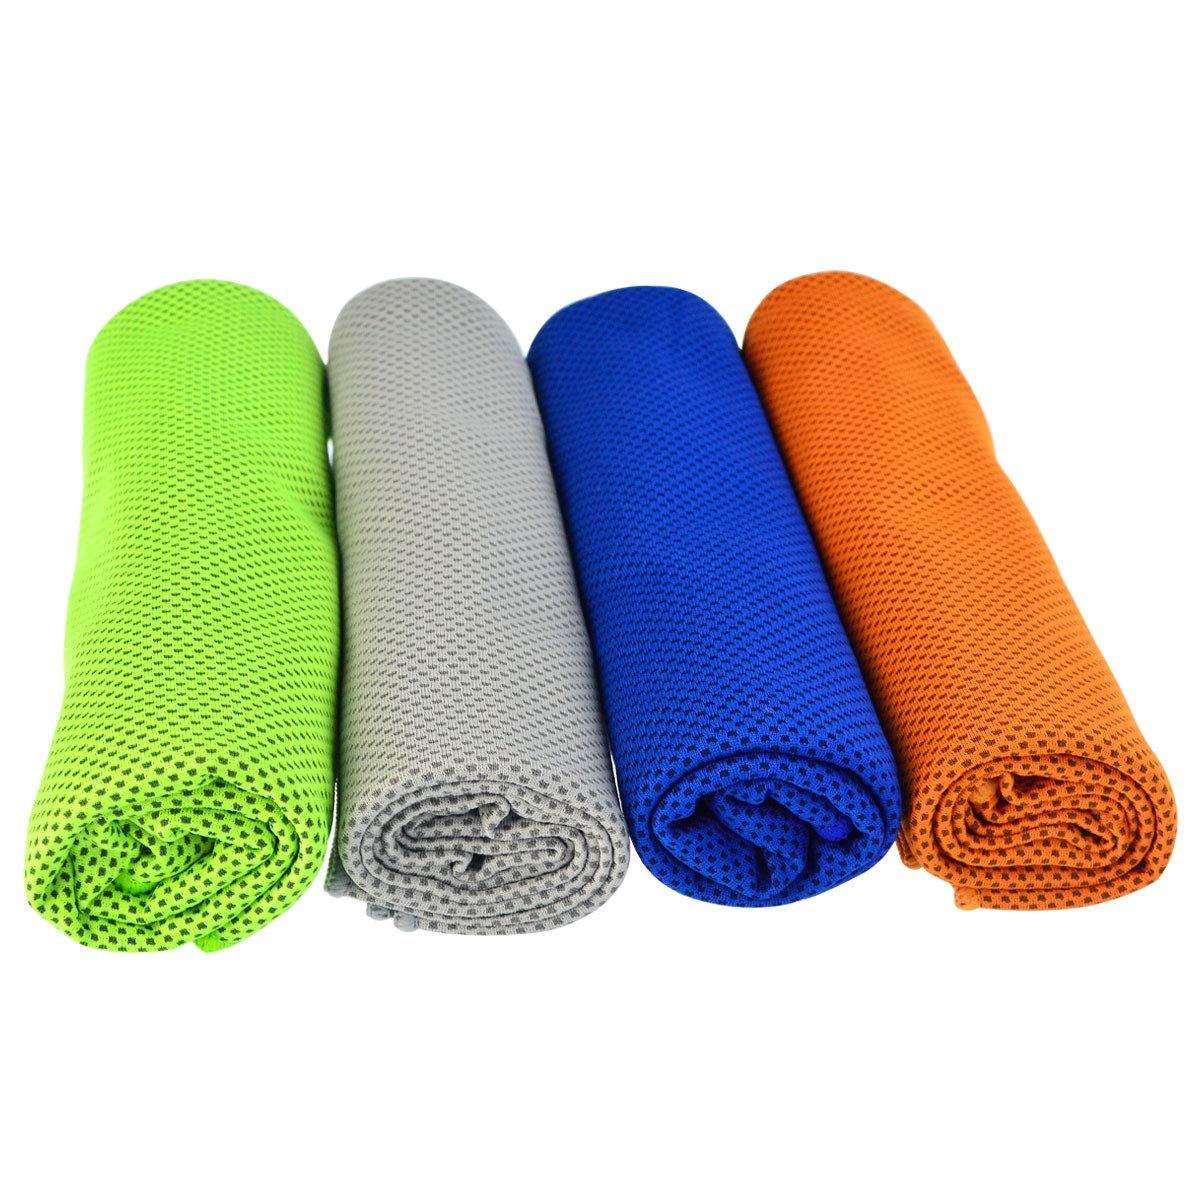 Tongcloud Cooling Towels 4 Pack Ice Towels for Workout, Outdoor Sports, Gym, Extra Long Cold Towel for Neck and Head